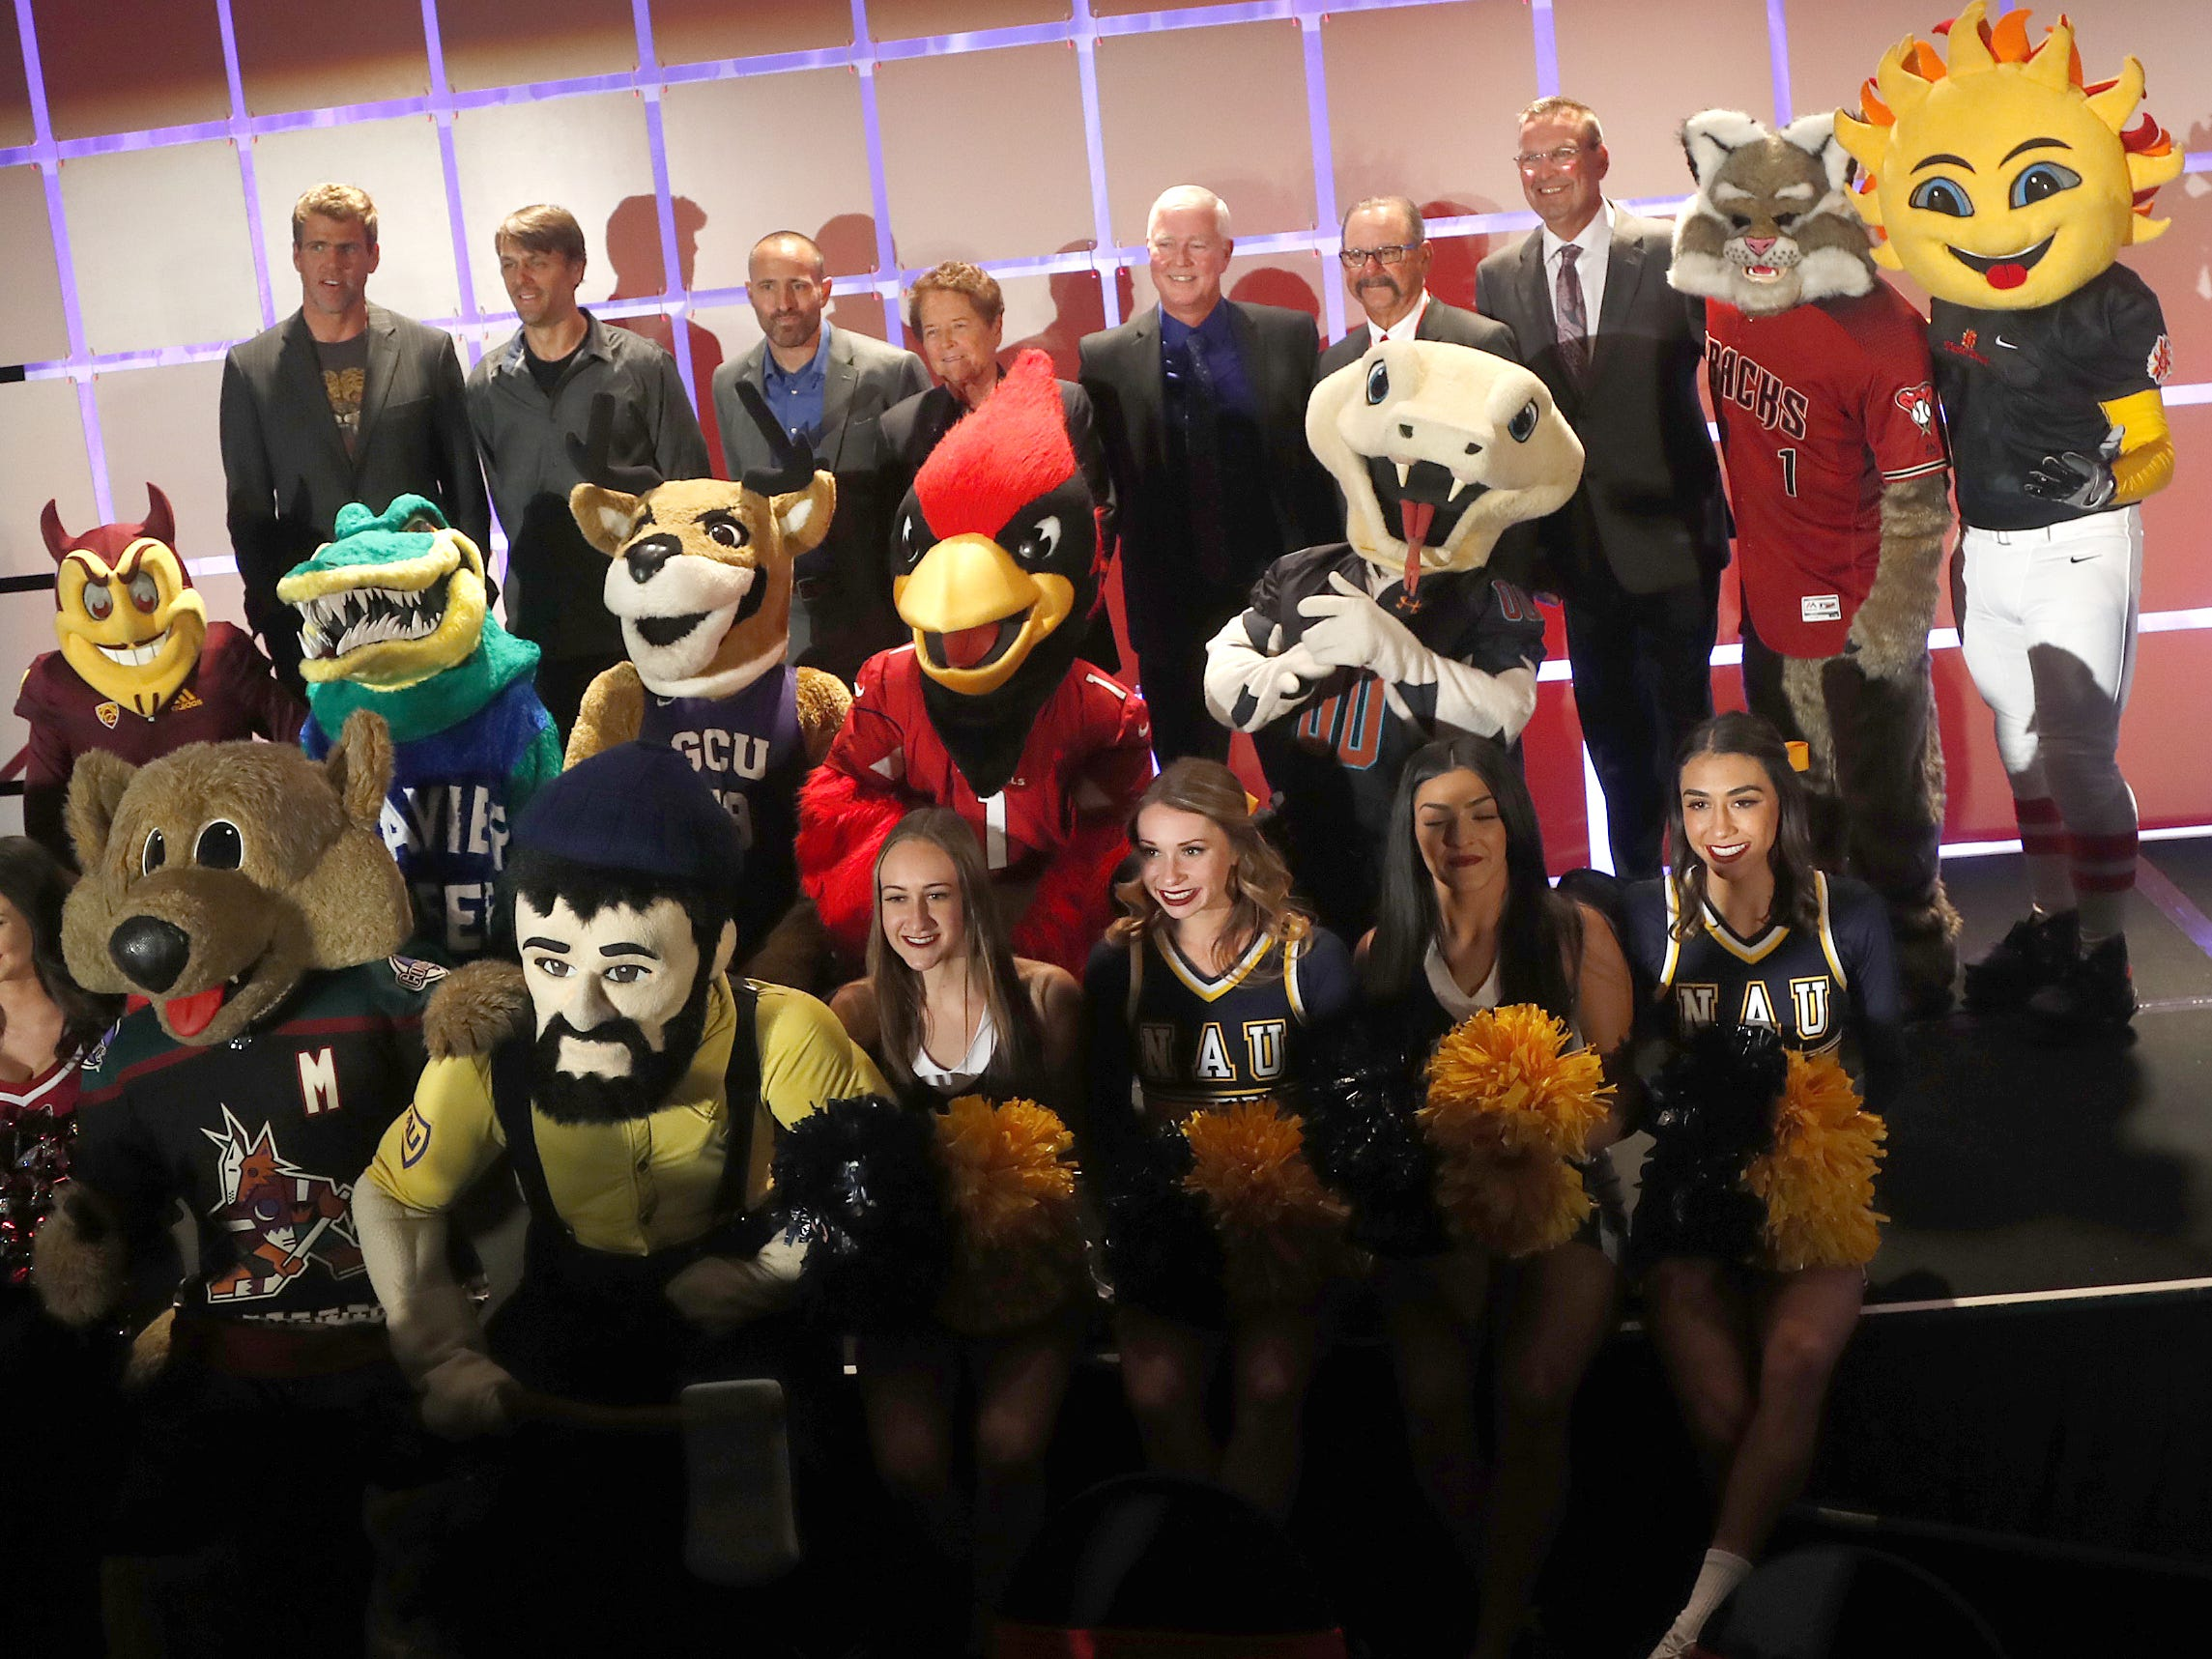 Arizona mascots take the stage with the 2018 inductees before the Arizona Sports Hall of Fame induction ceremony at the Scottsdale Plaza Resort in Scottsdale, Ariz. on November 1, 2018.